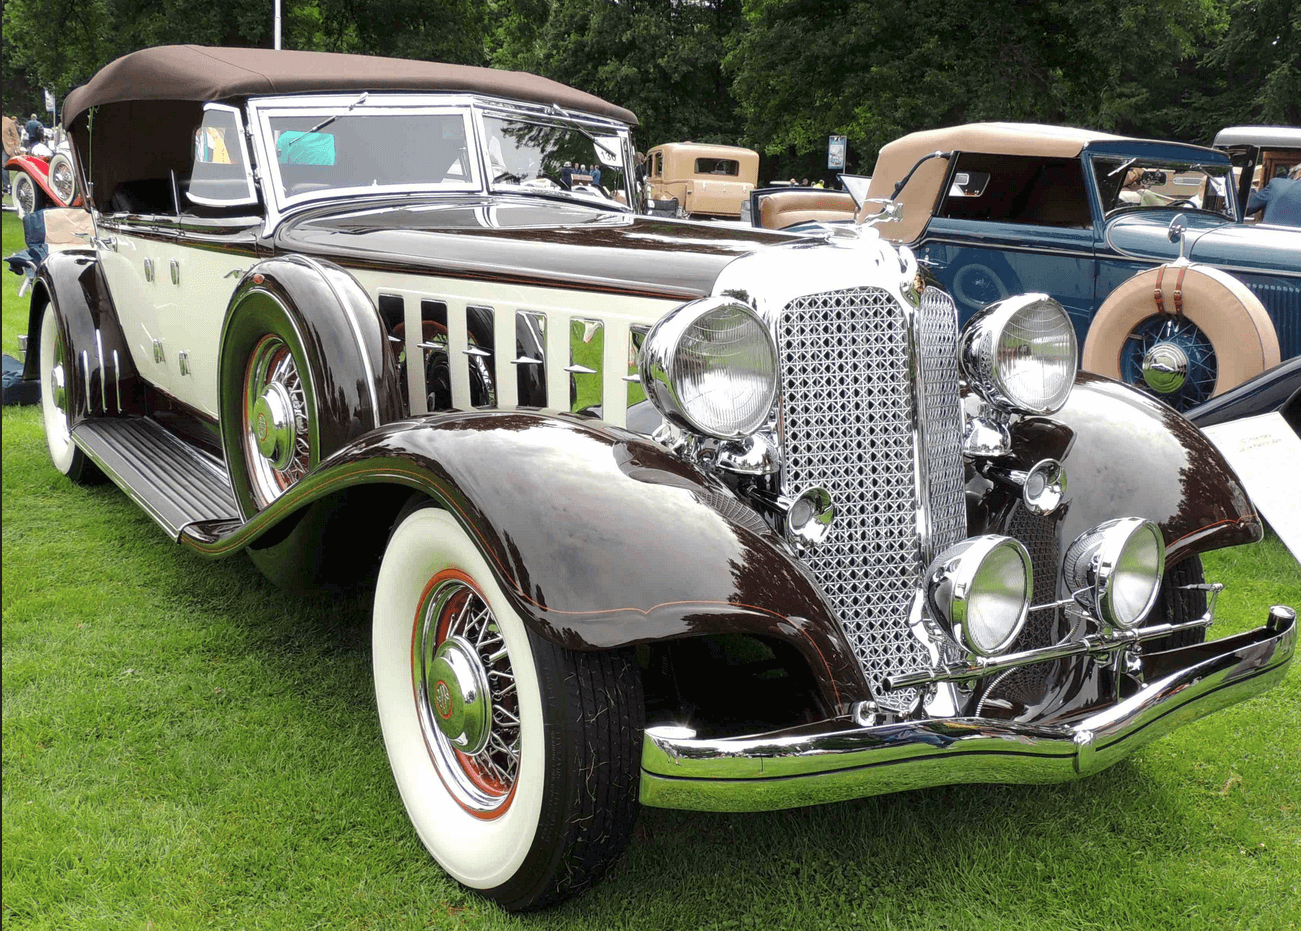 a 1933 Packard LeBaron. Quite a beaut, we say!